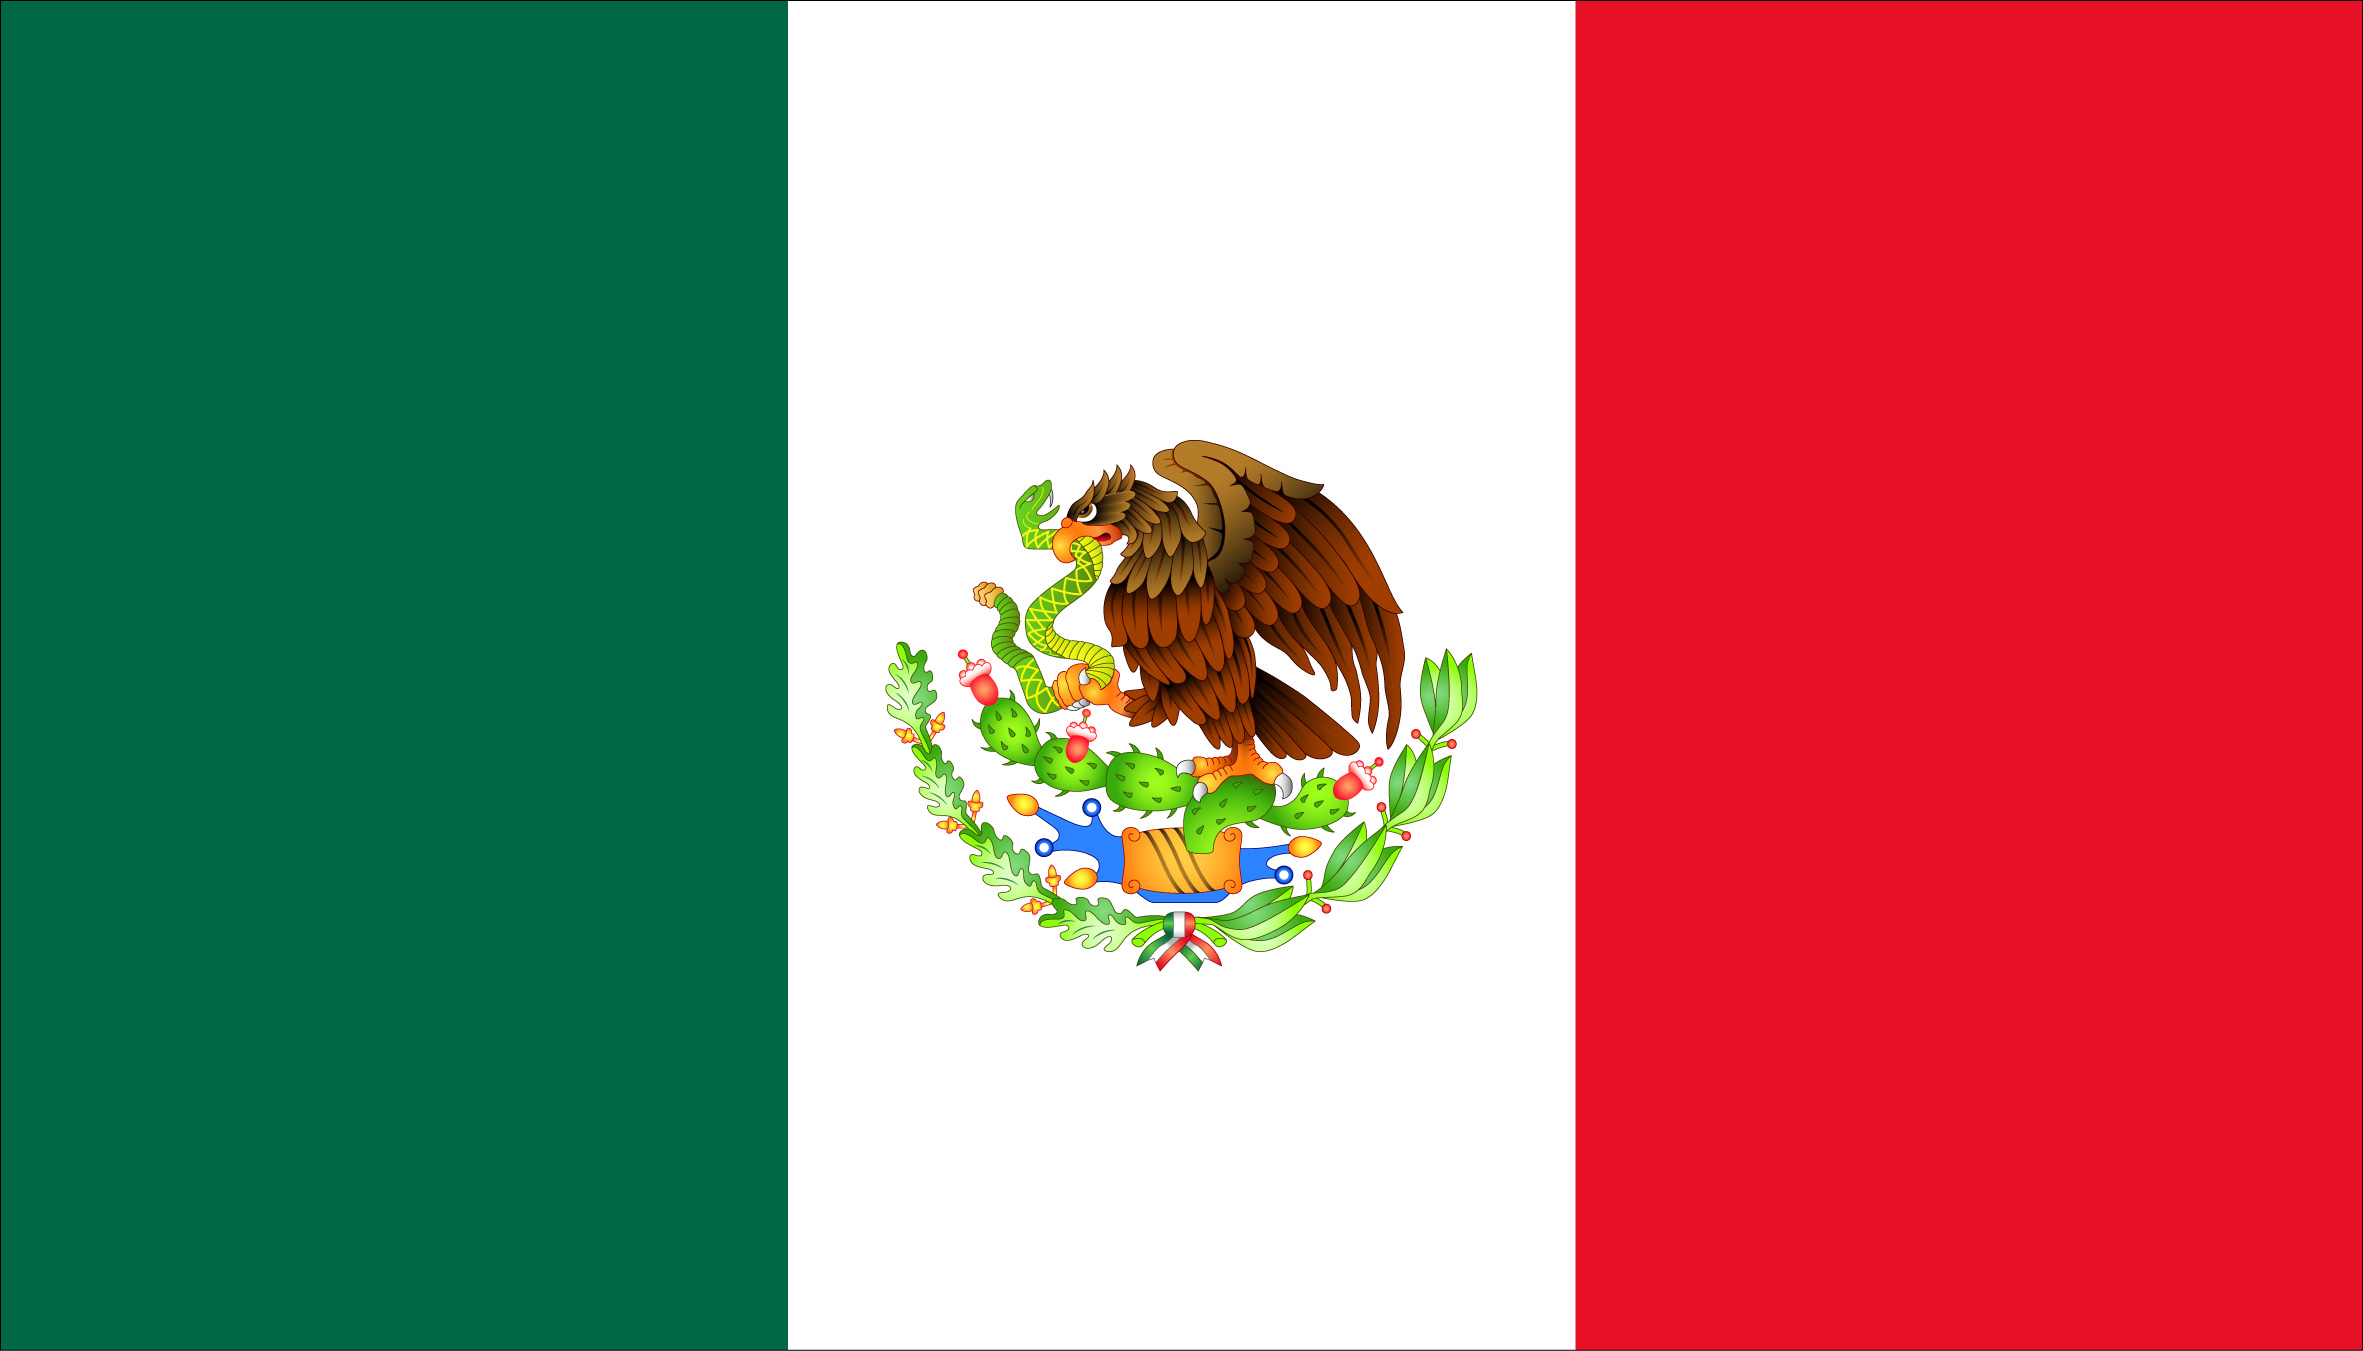 File:Flag of Mexico (reverse).png Wikimedia Commons